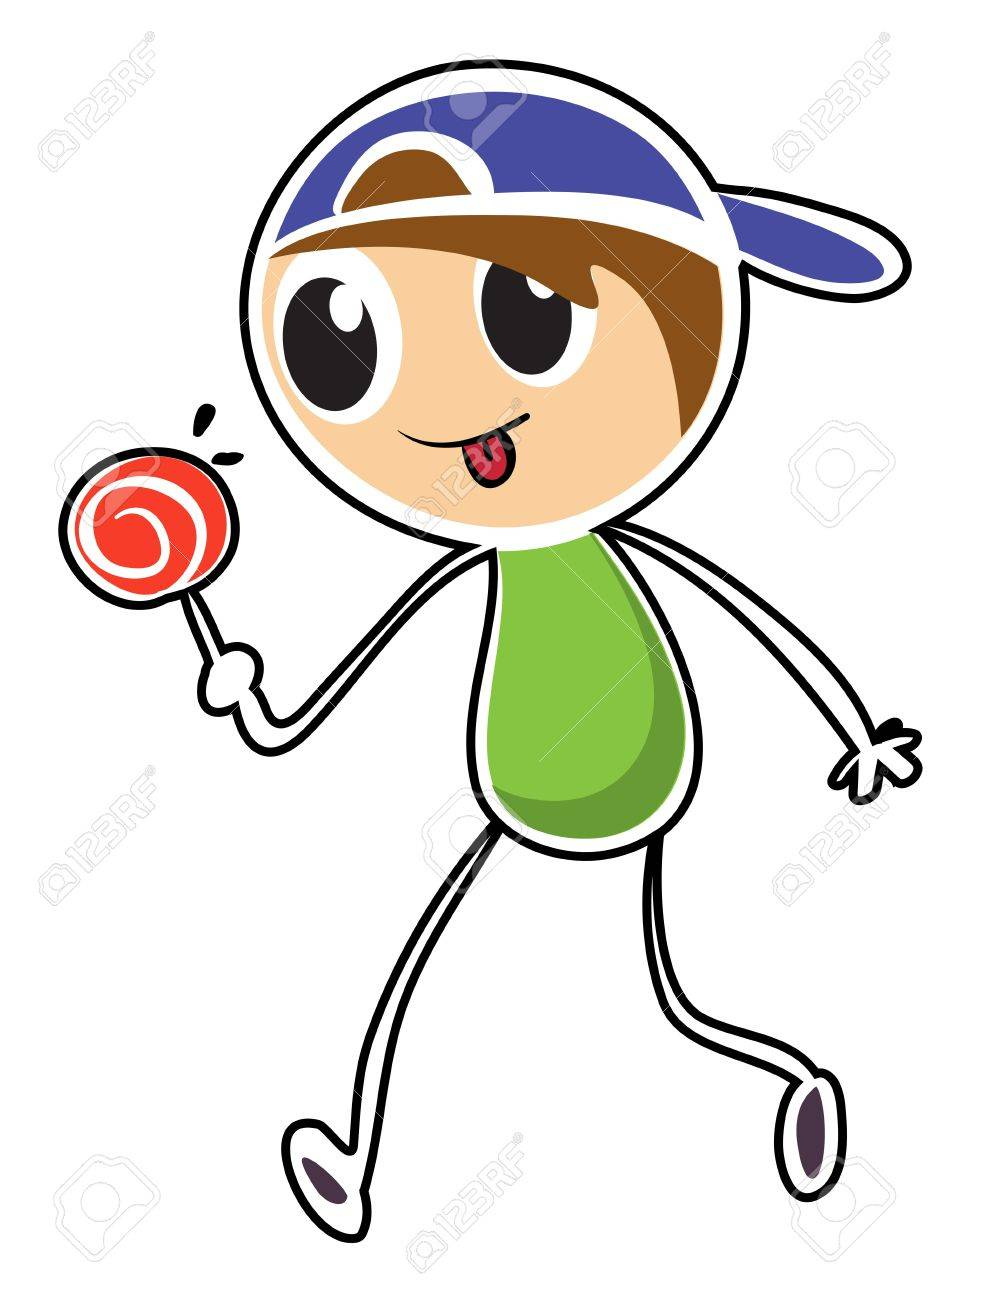 Illustration of a little boy with lollipop on a white background Stock Vector - 19301243